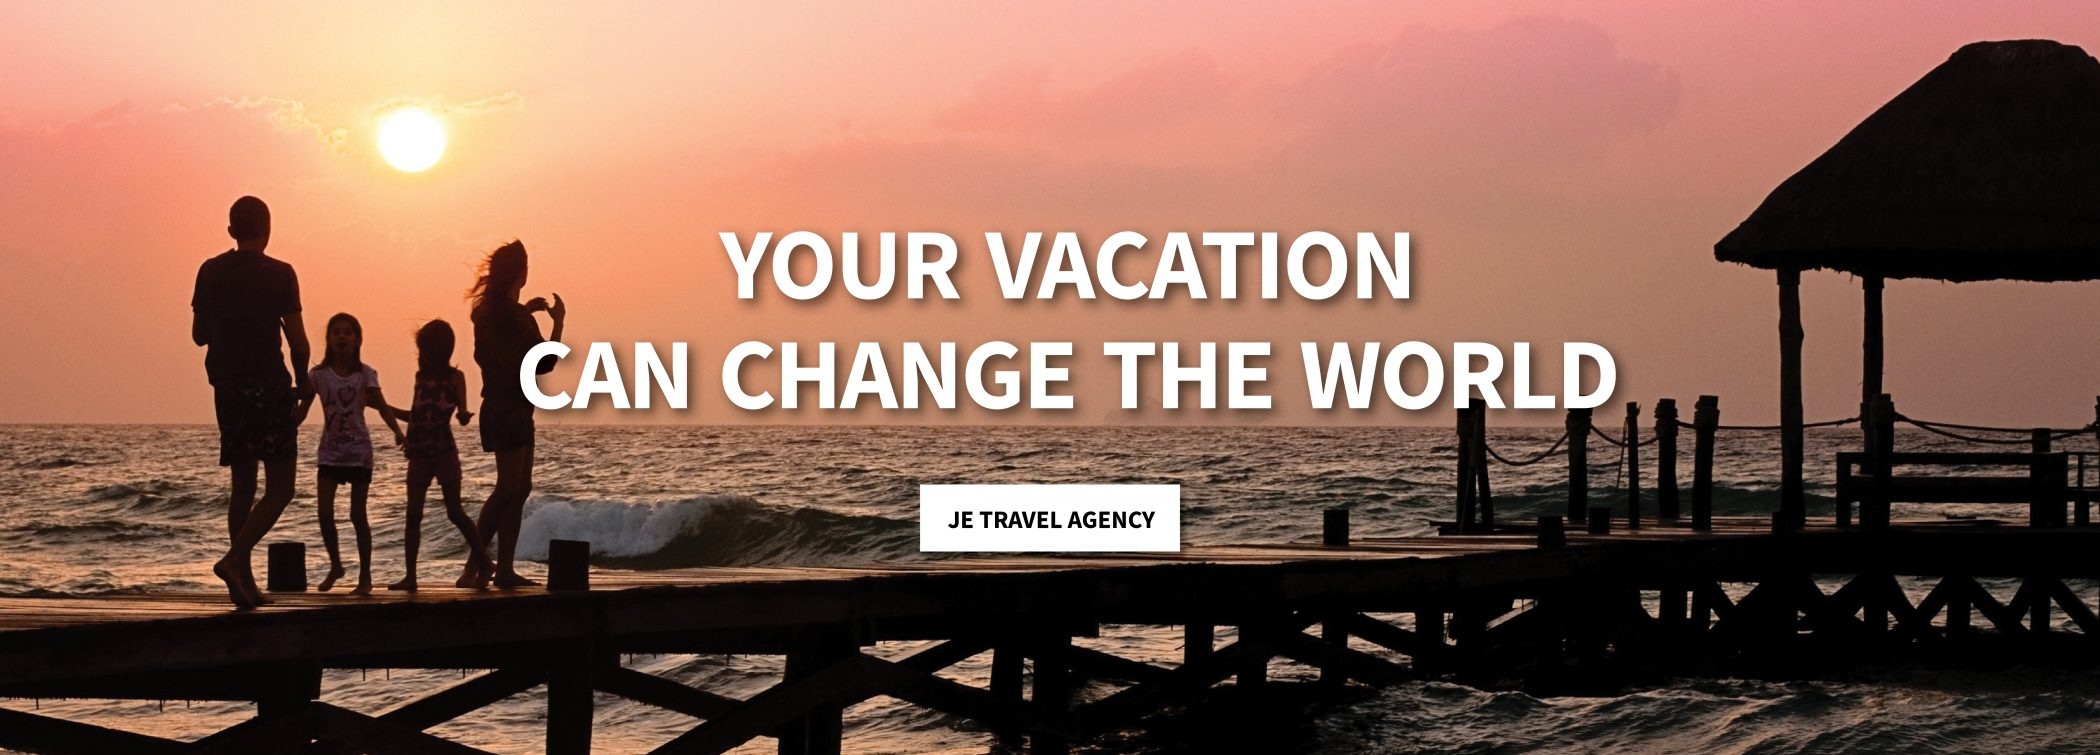 Travel Agency Ad